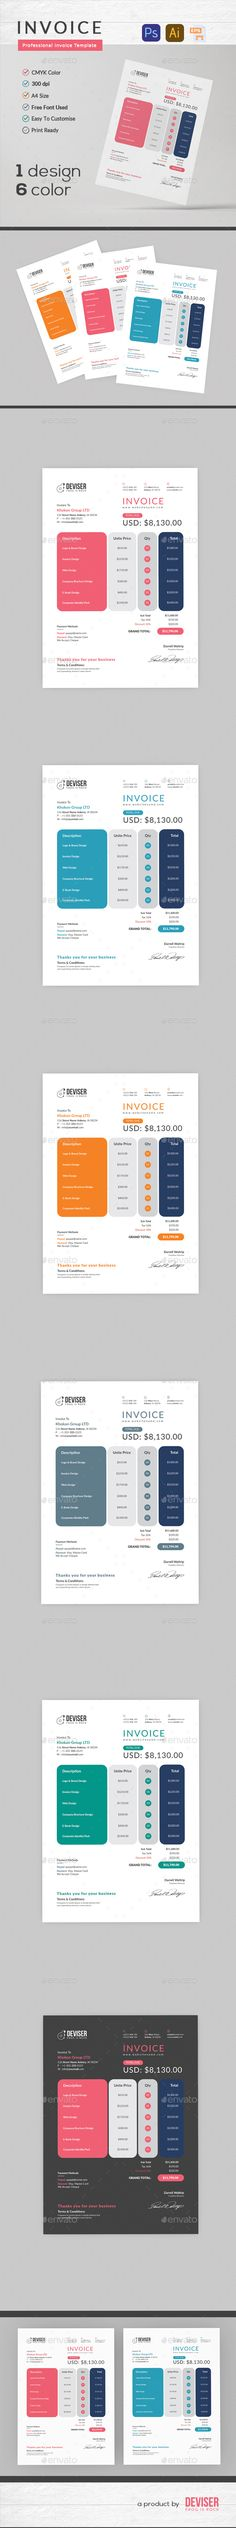 business invoice templates | illustrators, photoshop and invoice, Invoice examples